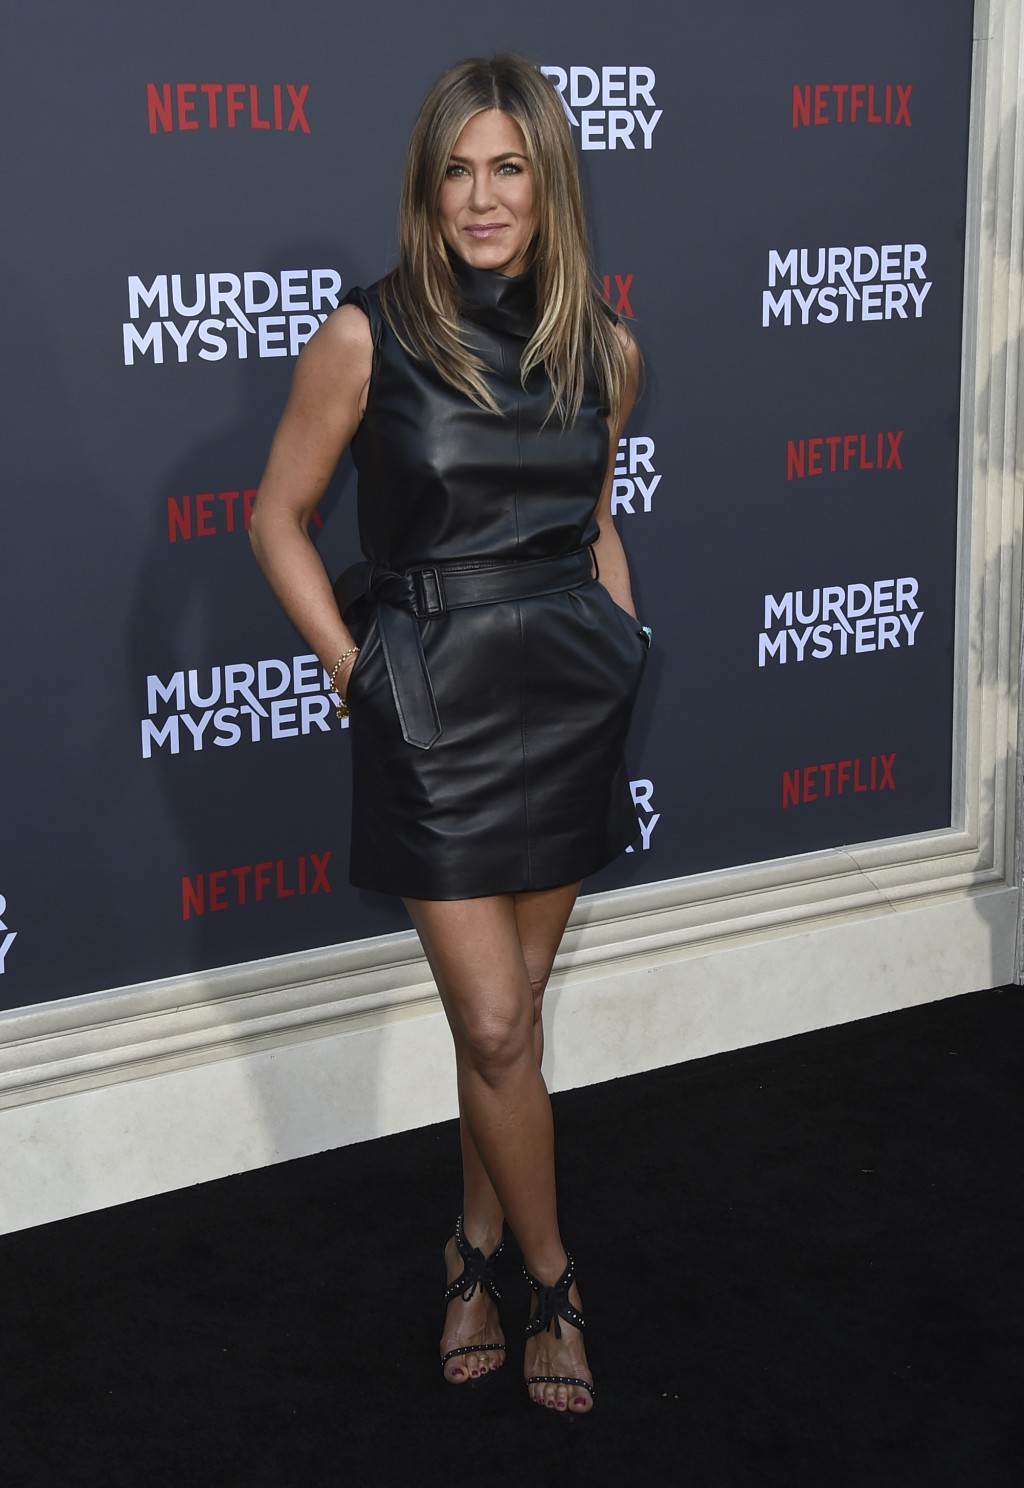 """Cast member Jennifer Aniston arrives at the Los Angeles premiere of """"Murder Mystery"""" at the Regency Village Theatre on Monday, June 10, 2019 in Westwo"""